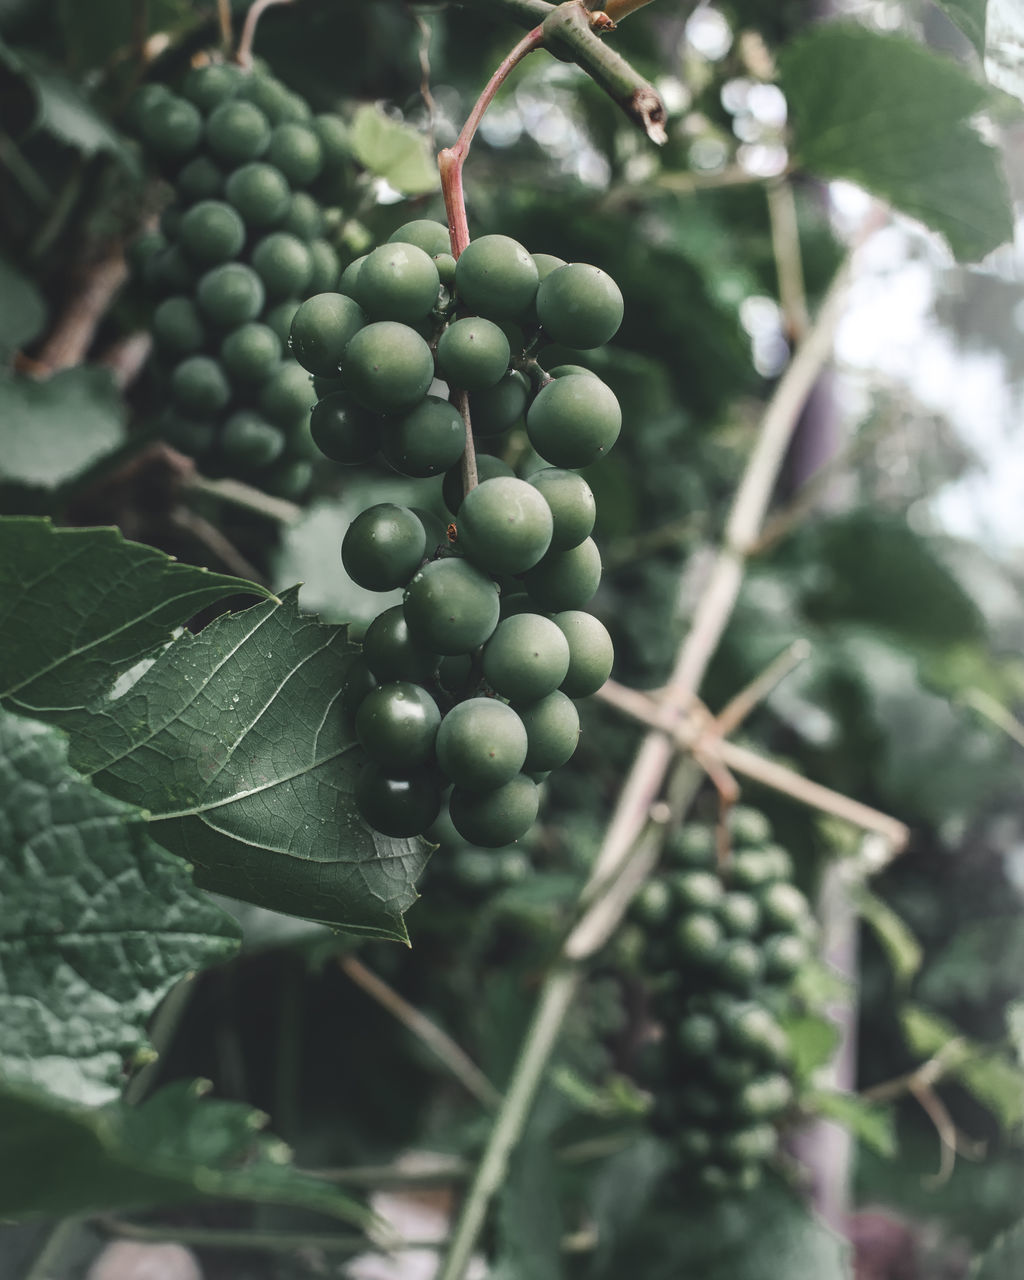 healthy eating, growth, food and drink, fruit, food, plant, freshness, green color, plant part, leaf, close-up, tree, nature, agriculture, day, focus on foreground, no people, wellbeing, beauty in nature, plant stem, outdoors, ripe, winemaking